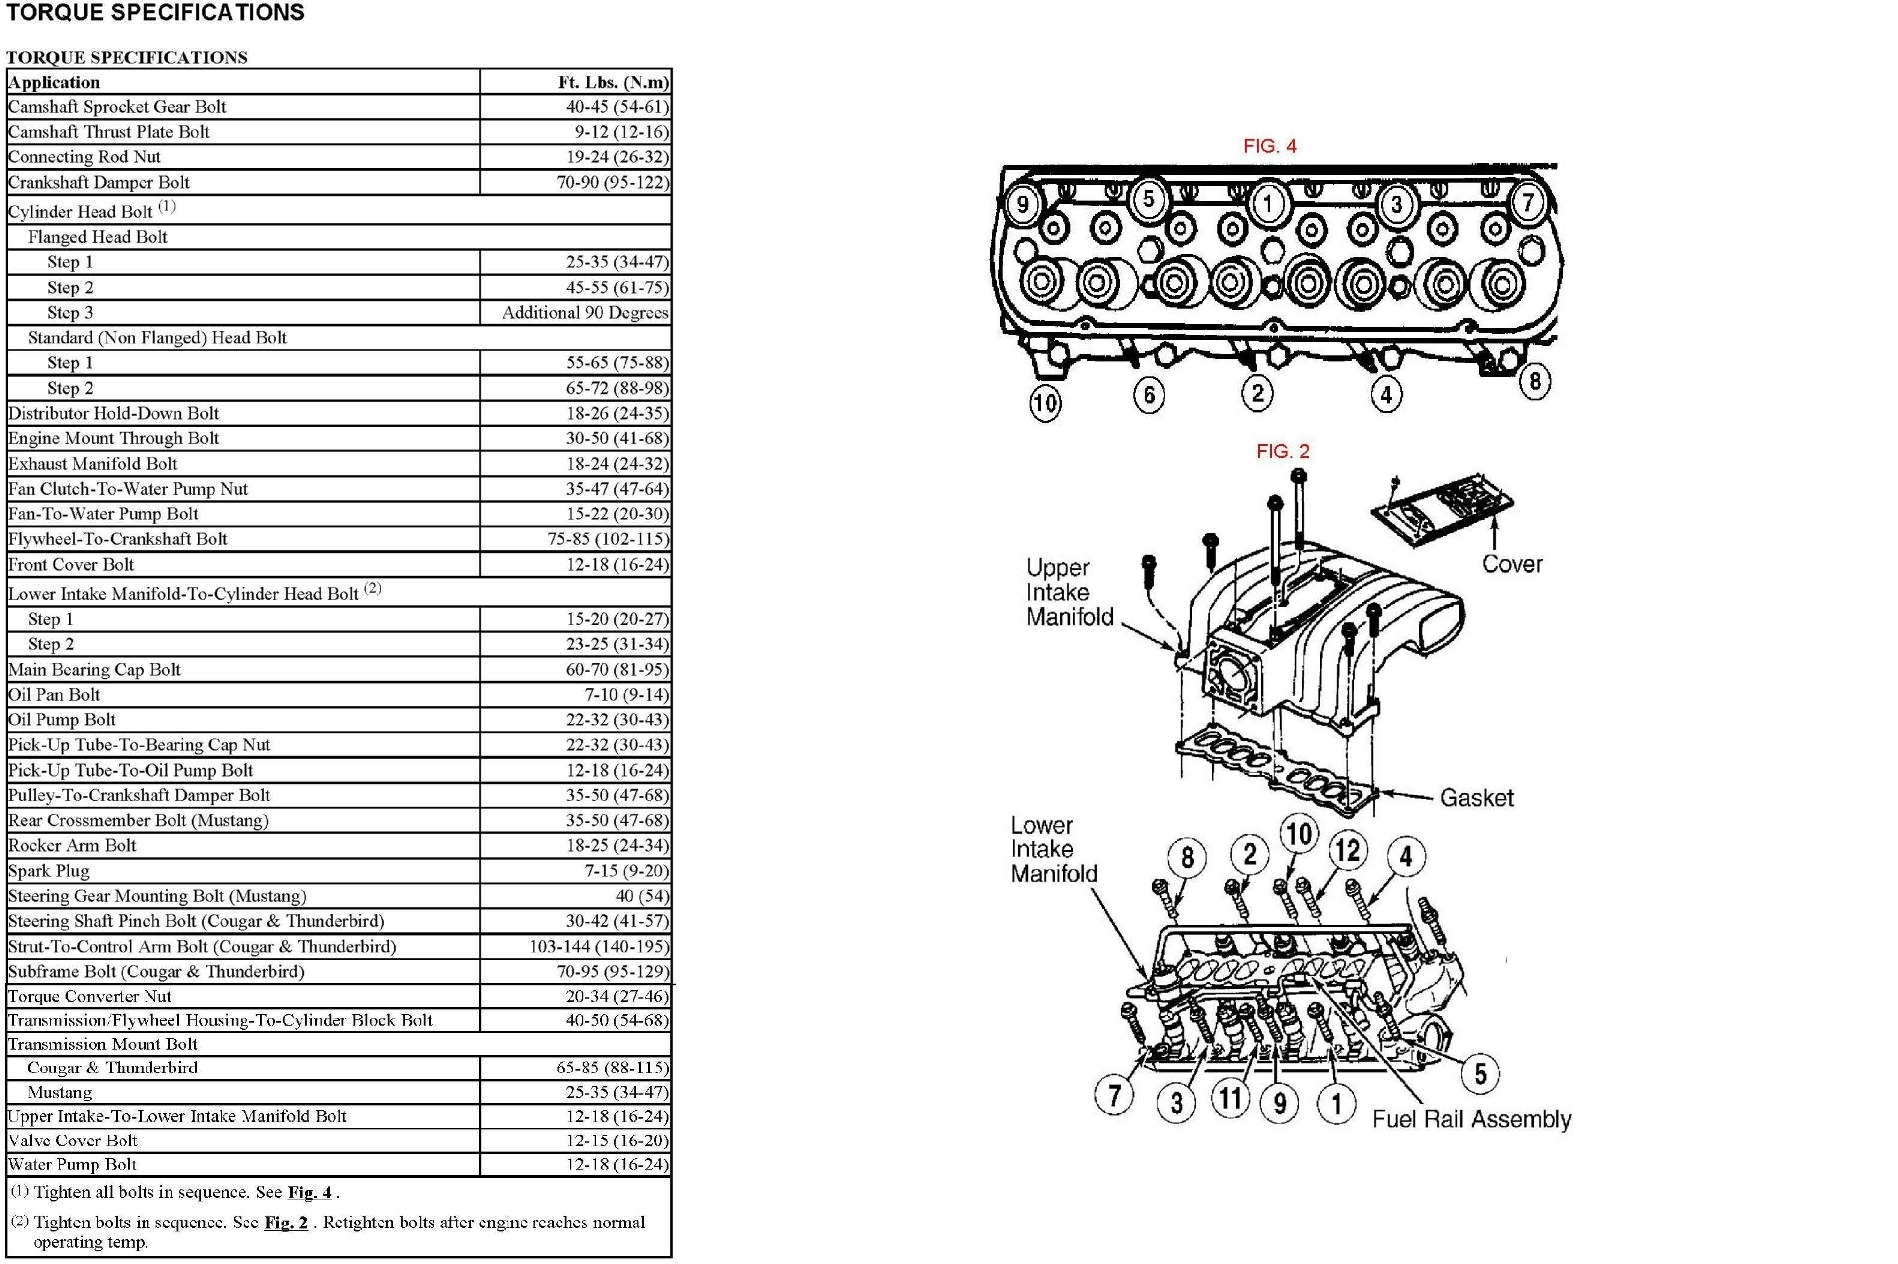 1995 Mustang Engine Diagram Wiring Library Ford Gt Radio Everything You Need To Know About 1979 1993 Foxbody Mustangs Rh Americanmuscle Com 98